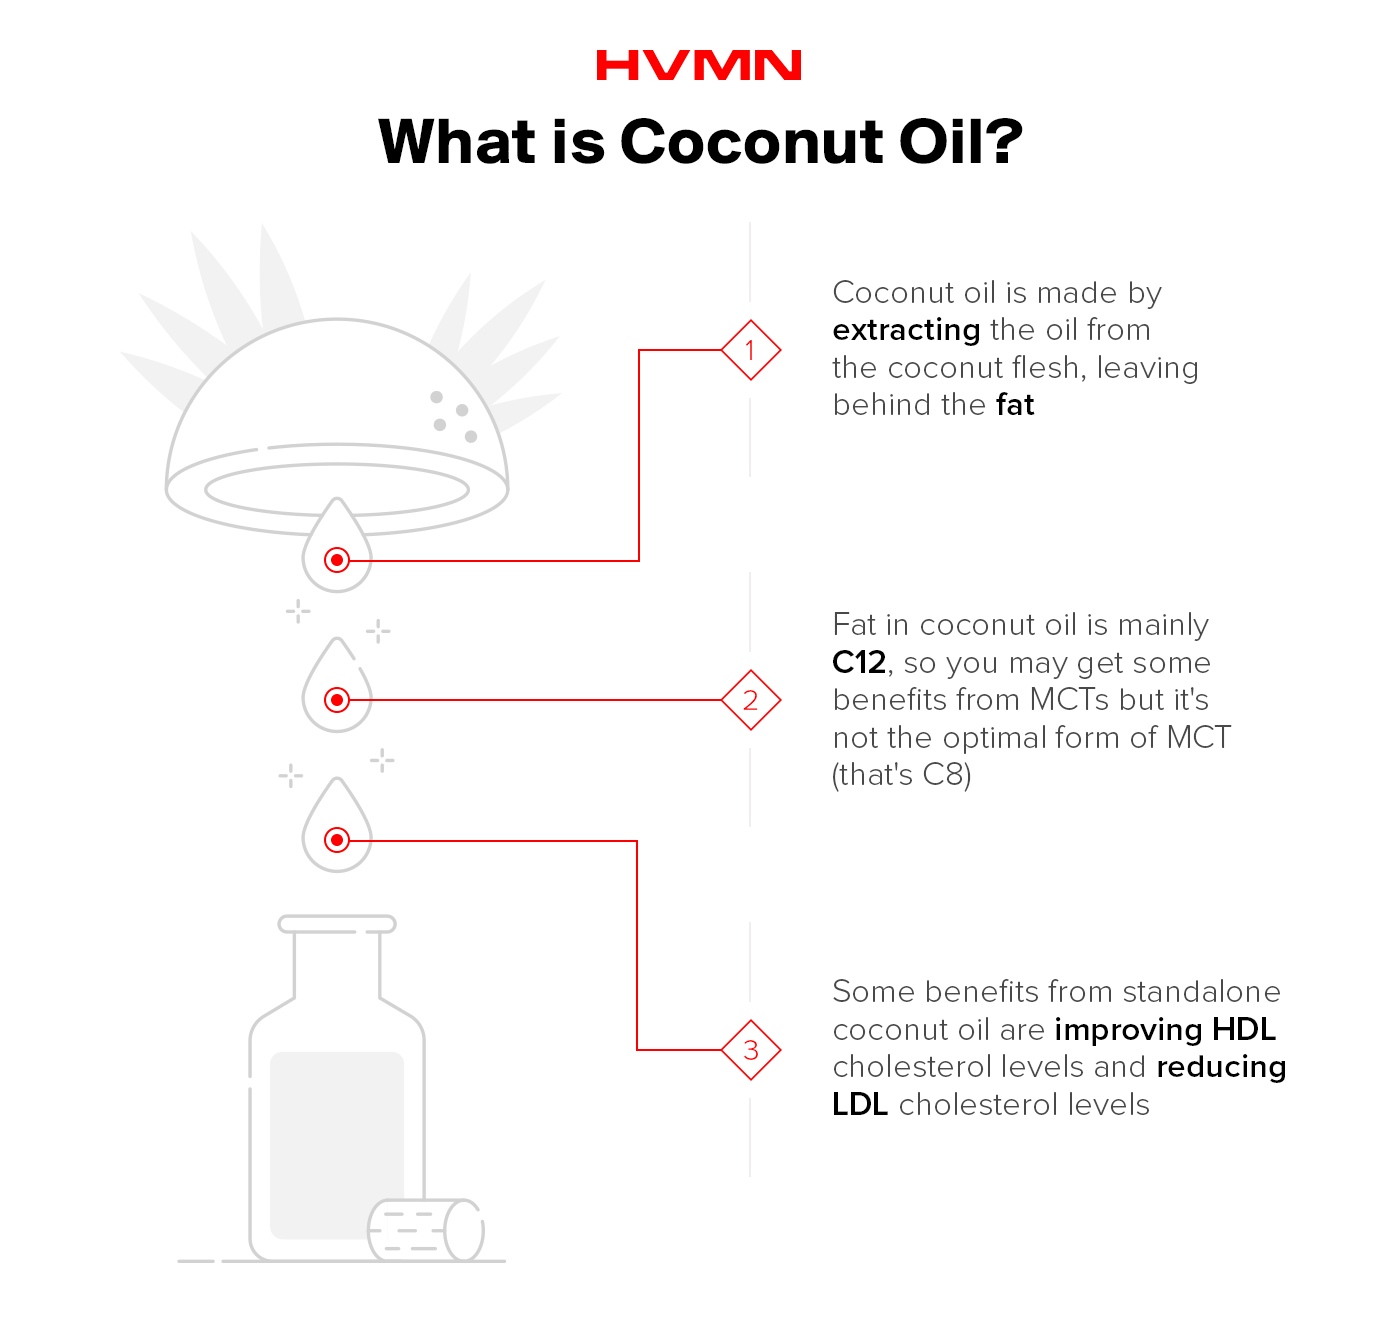 The image describes what coconut oil is and how it's extracted along with some of its benefits.,